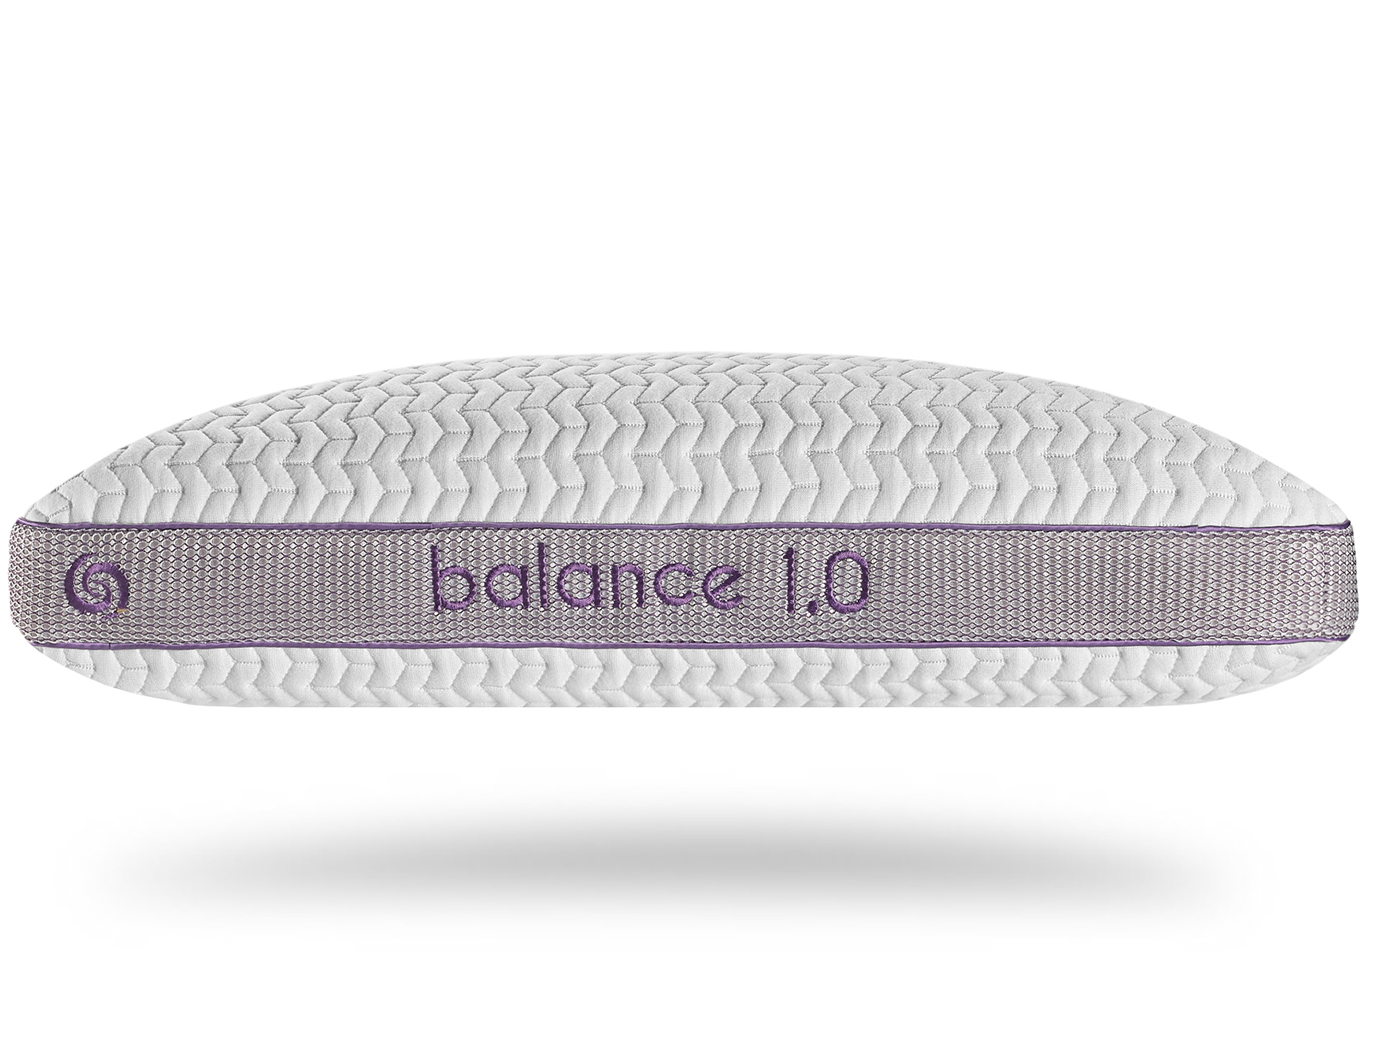 Bedgear Balance 1.0 Personal Pillow